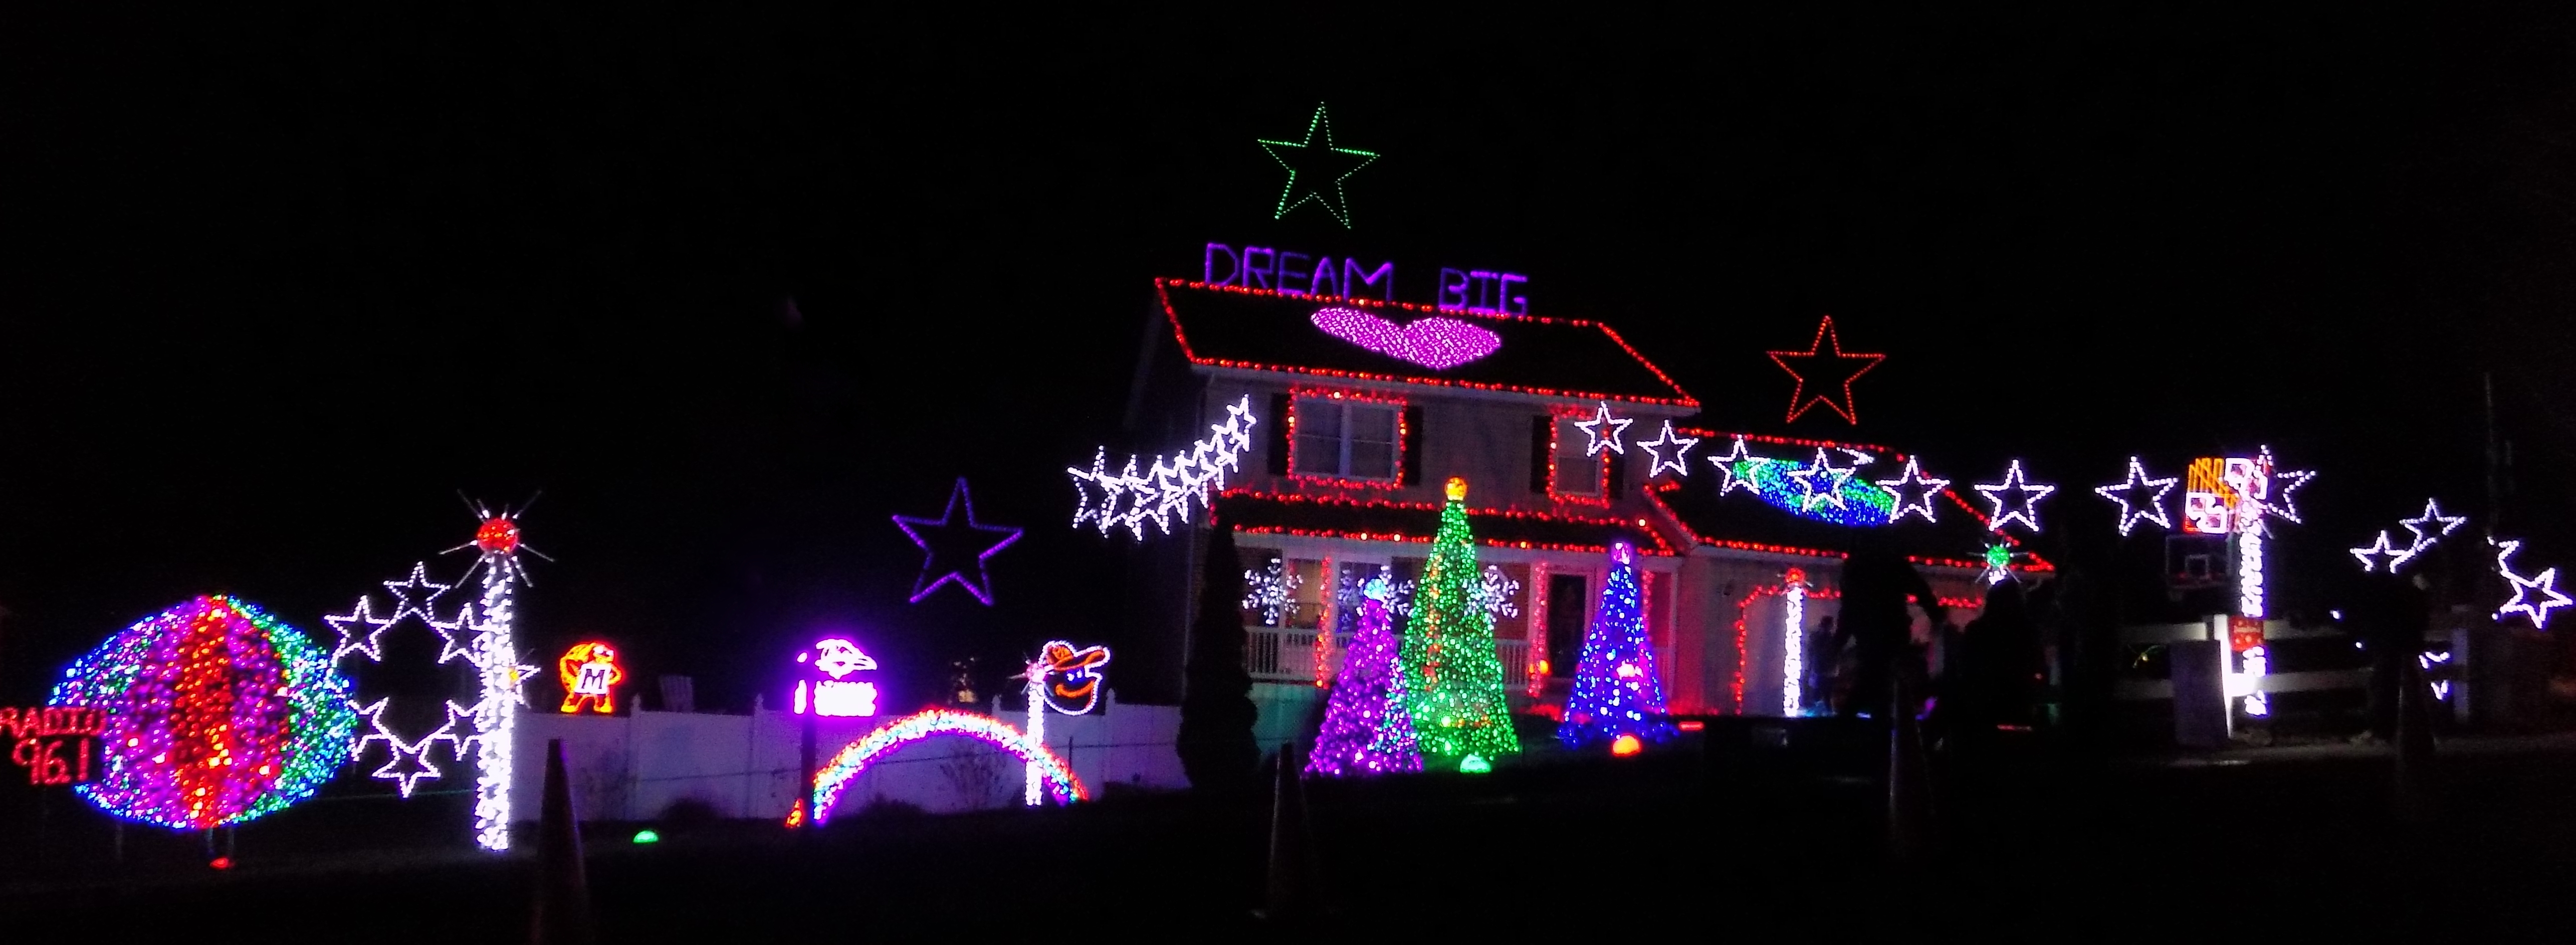 filechristmas 2015 an ellicott city resident obsessed with holiday lighting featured on